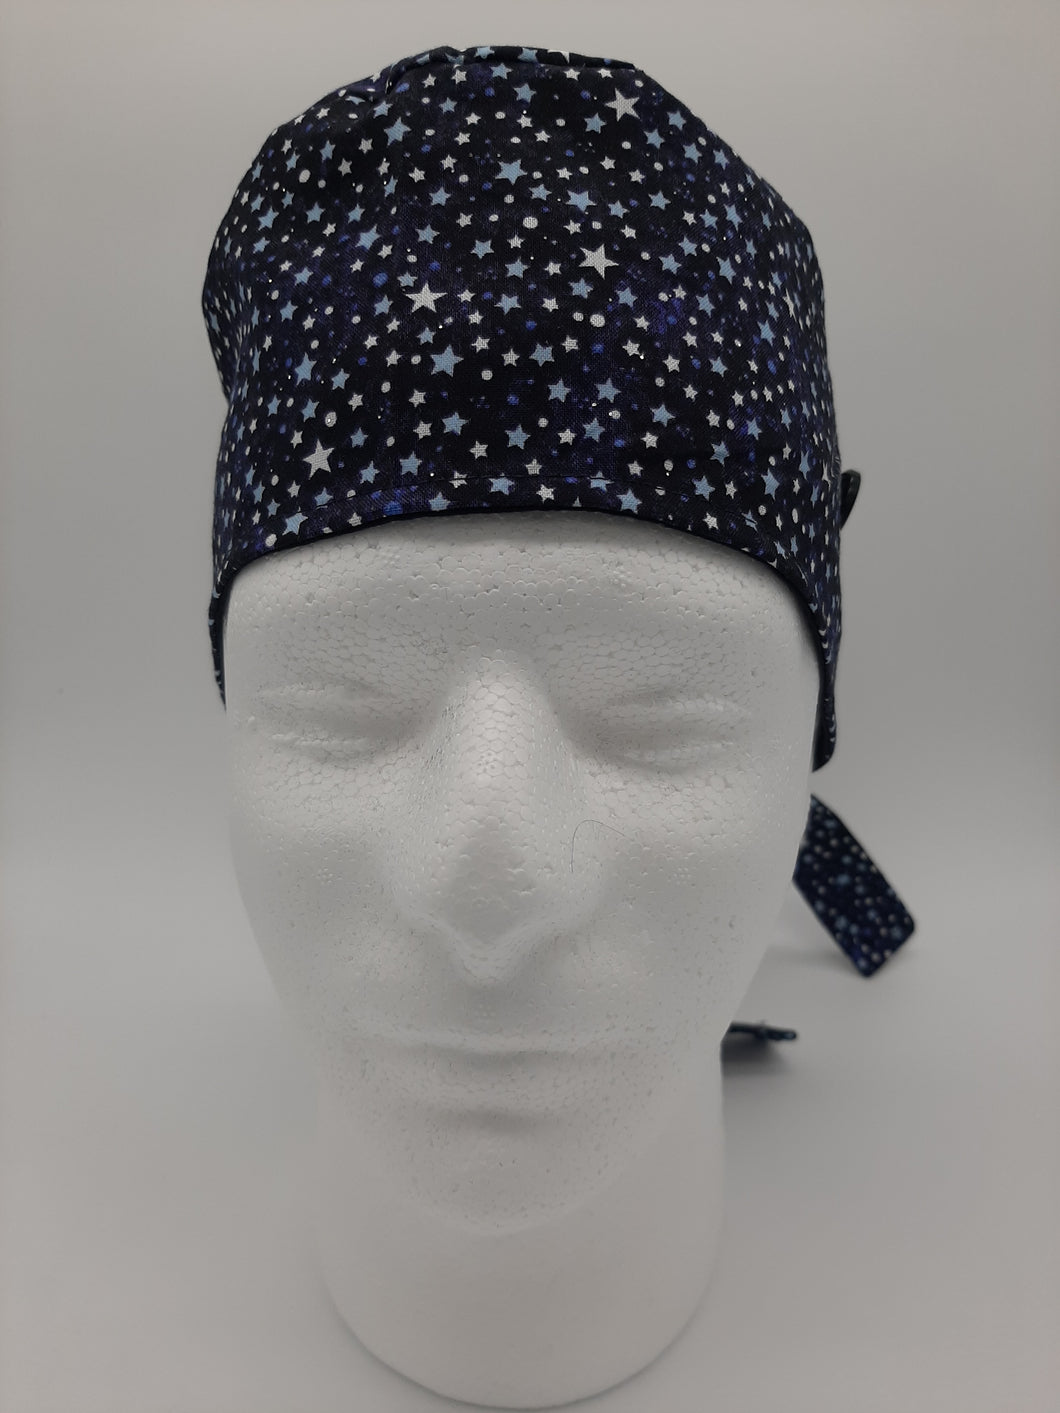 Stars + Glitter Print Scrub Cap Reversible to solid Black color with Red Maple Leaf Patch